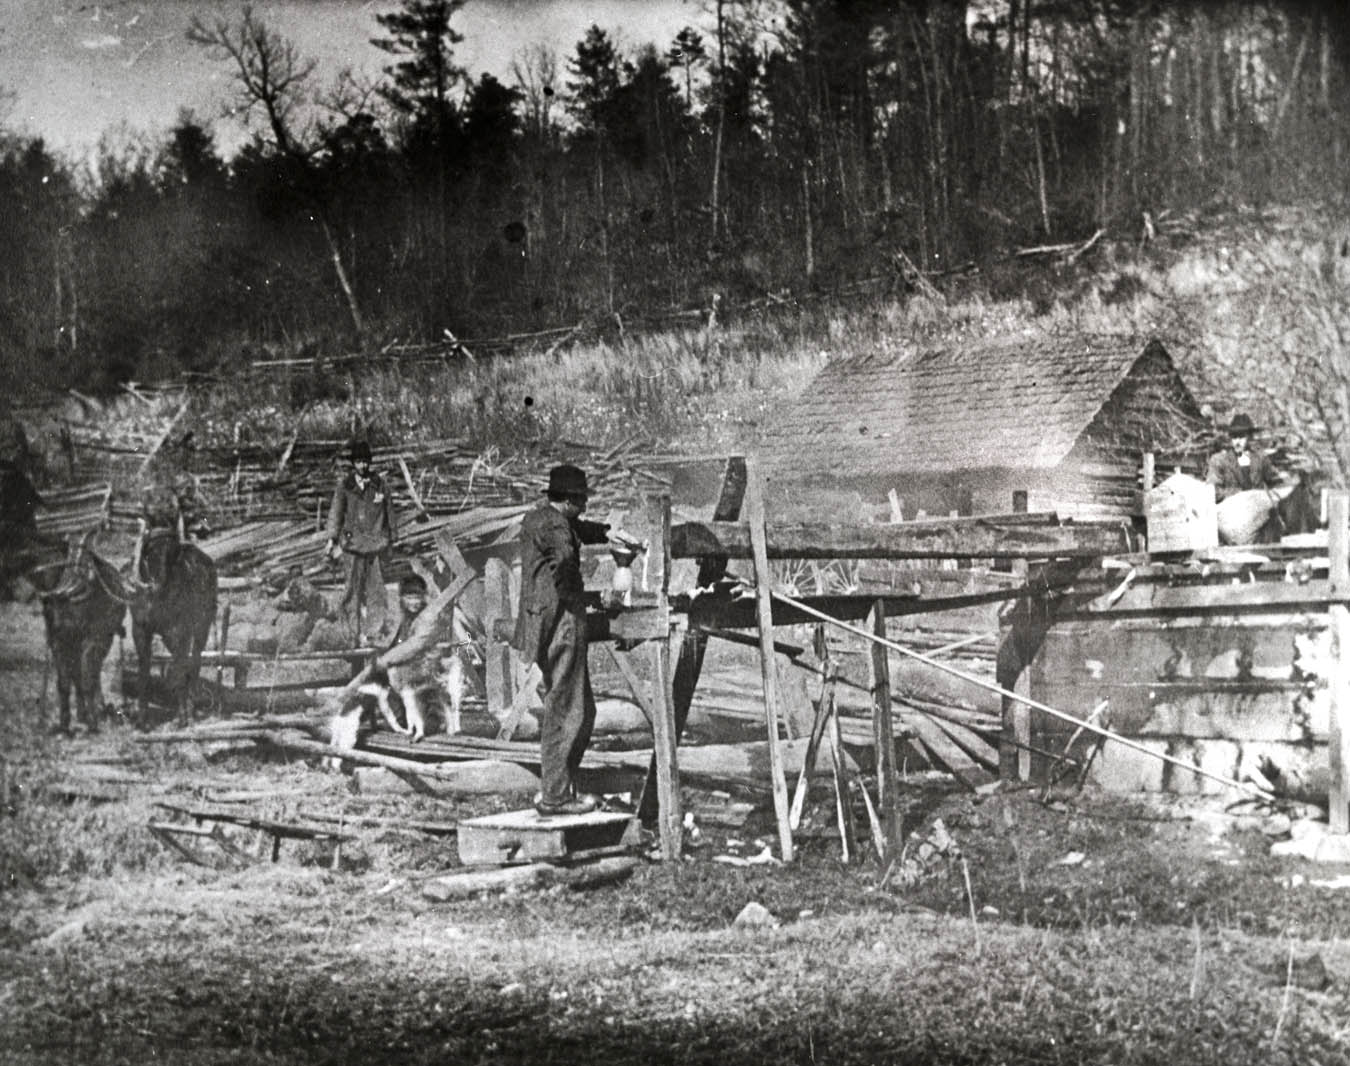 The Saloon and Anarchy: Prohibition in Tennessee, Additional